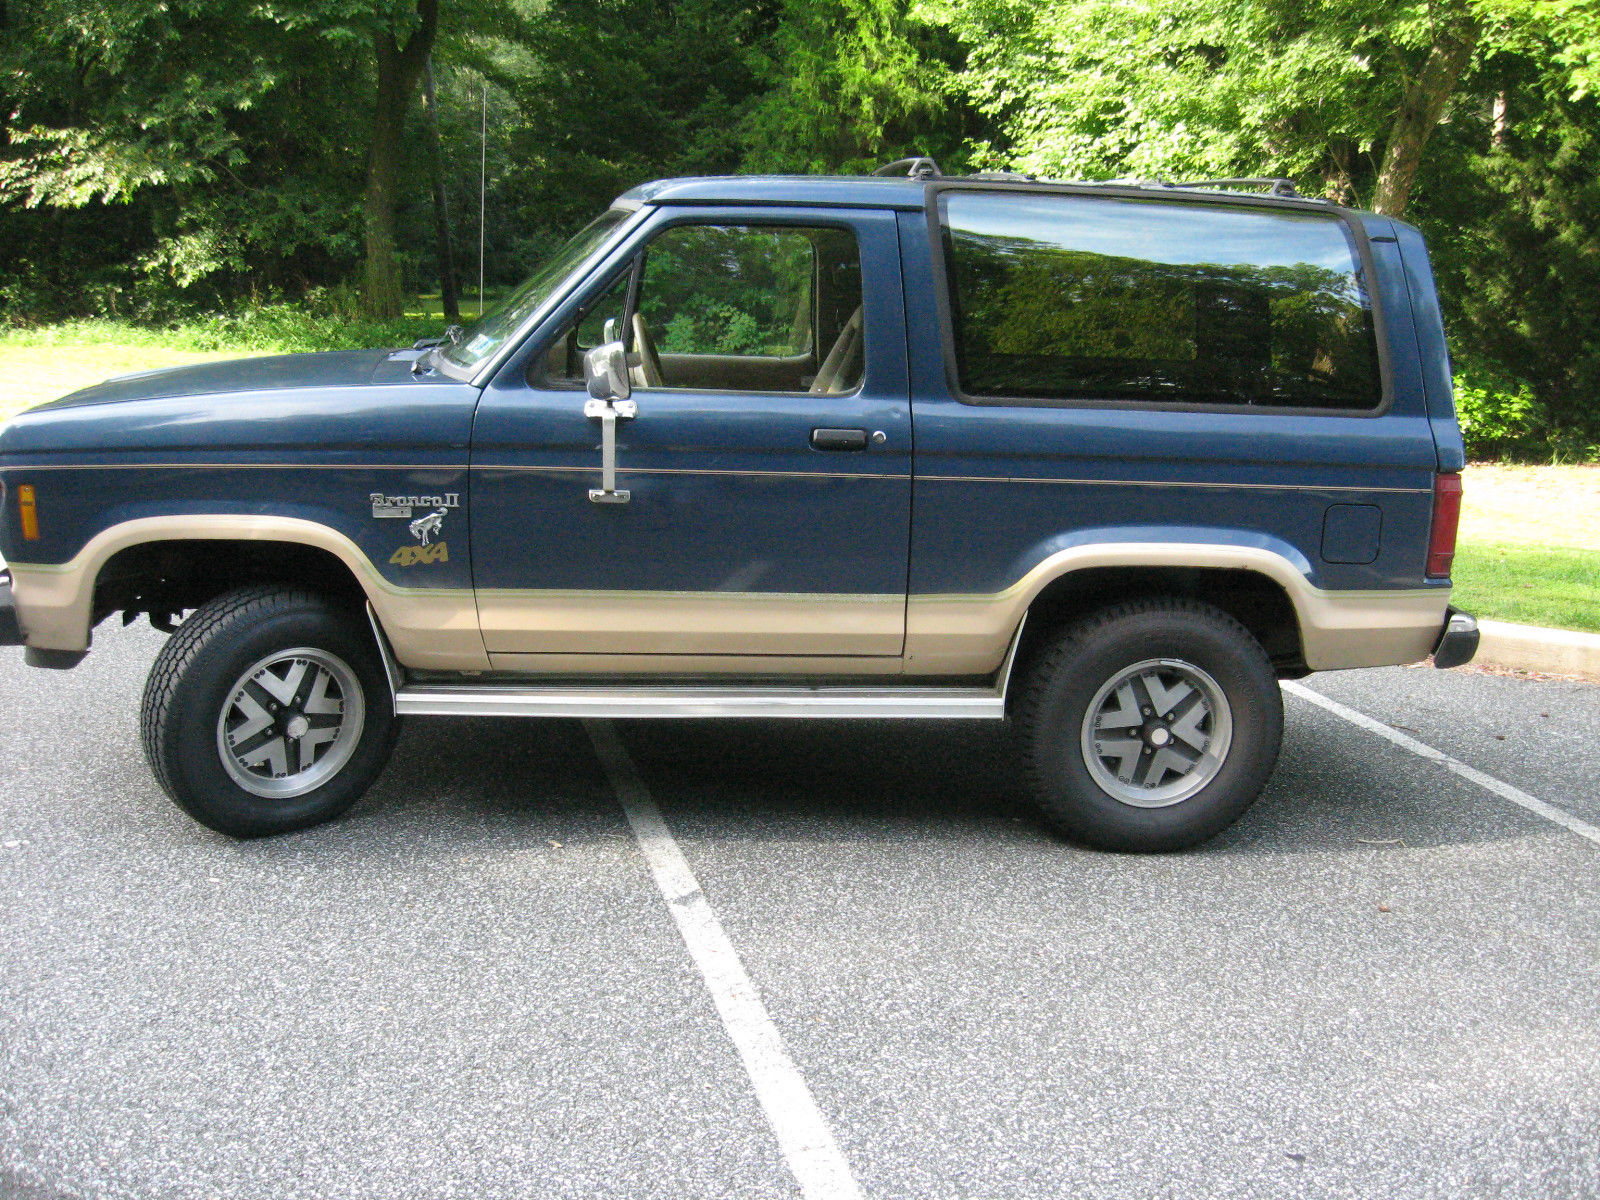 Ford Bronco Ii 1986 4x4 Suv Easy Restoration Or Fight Snow As Is